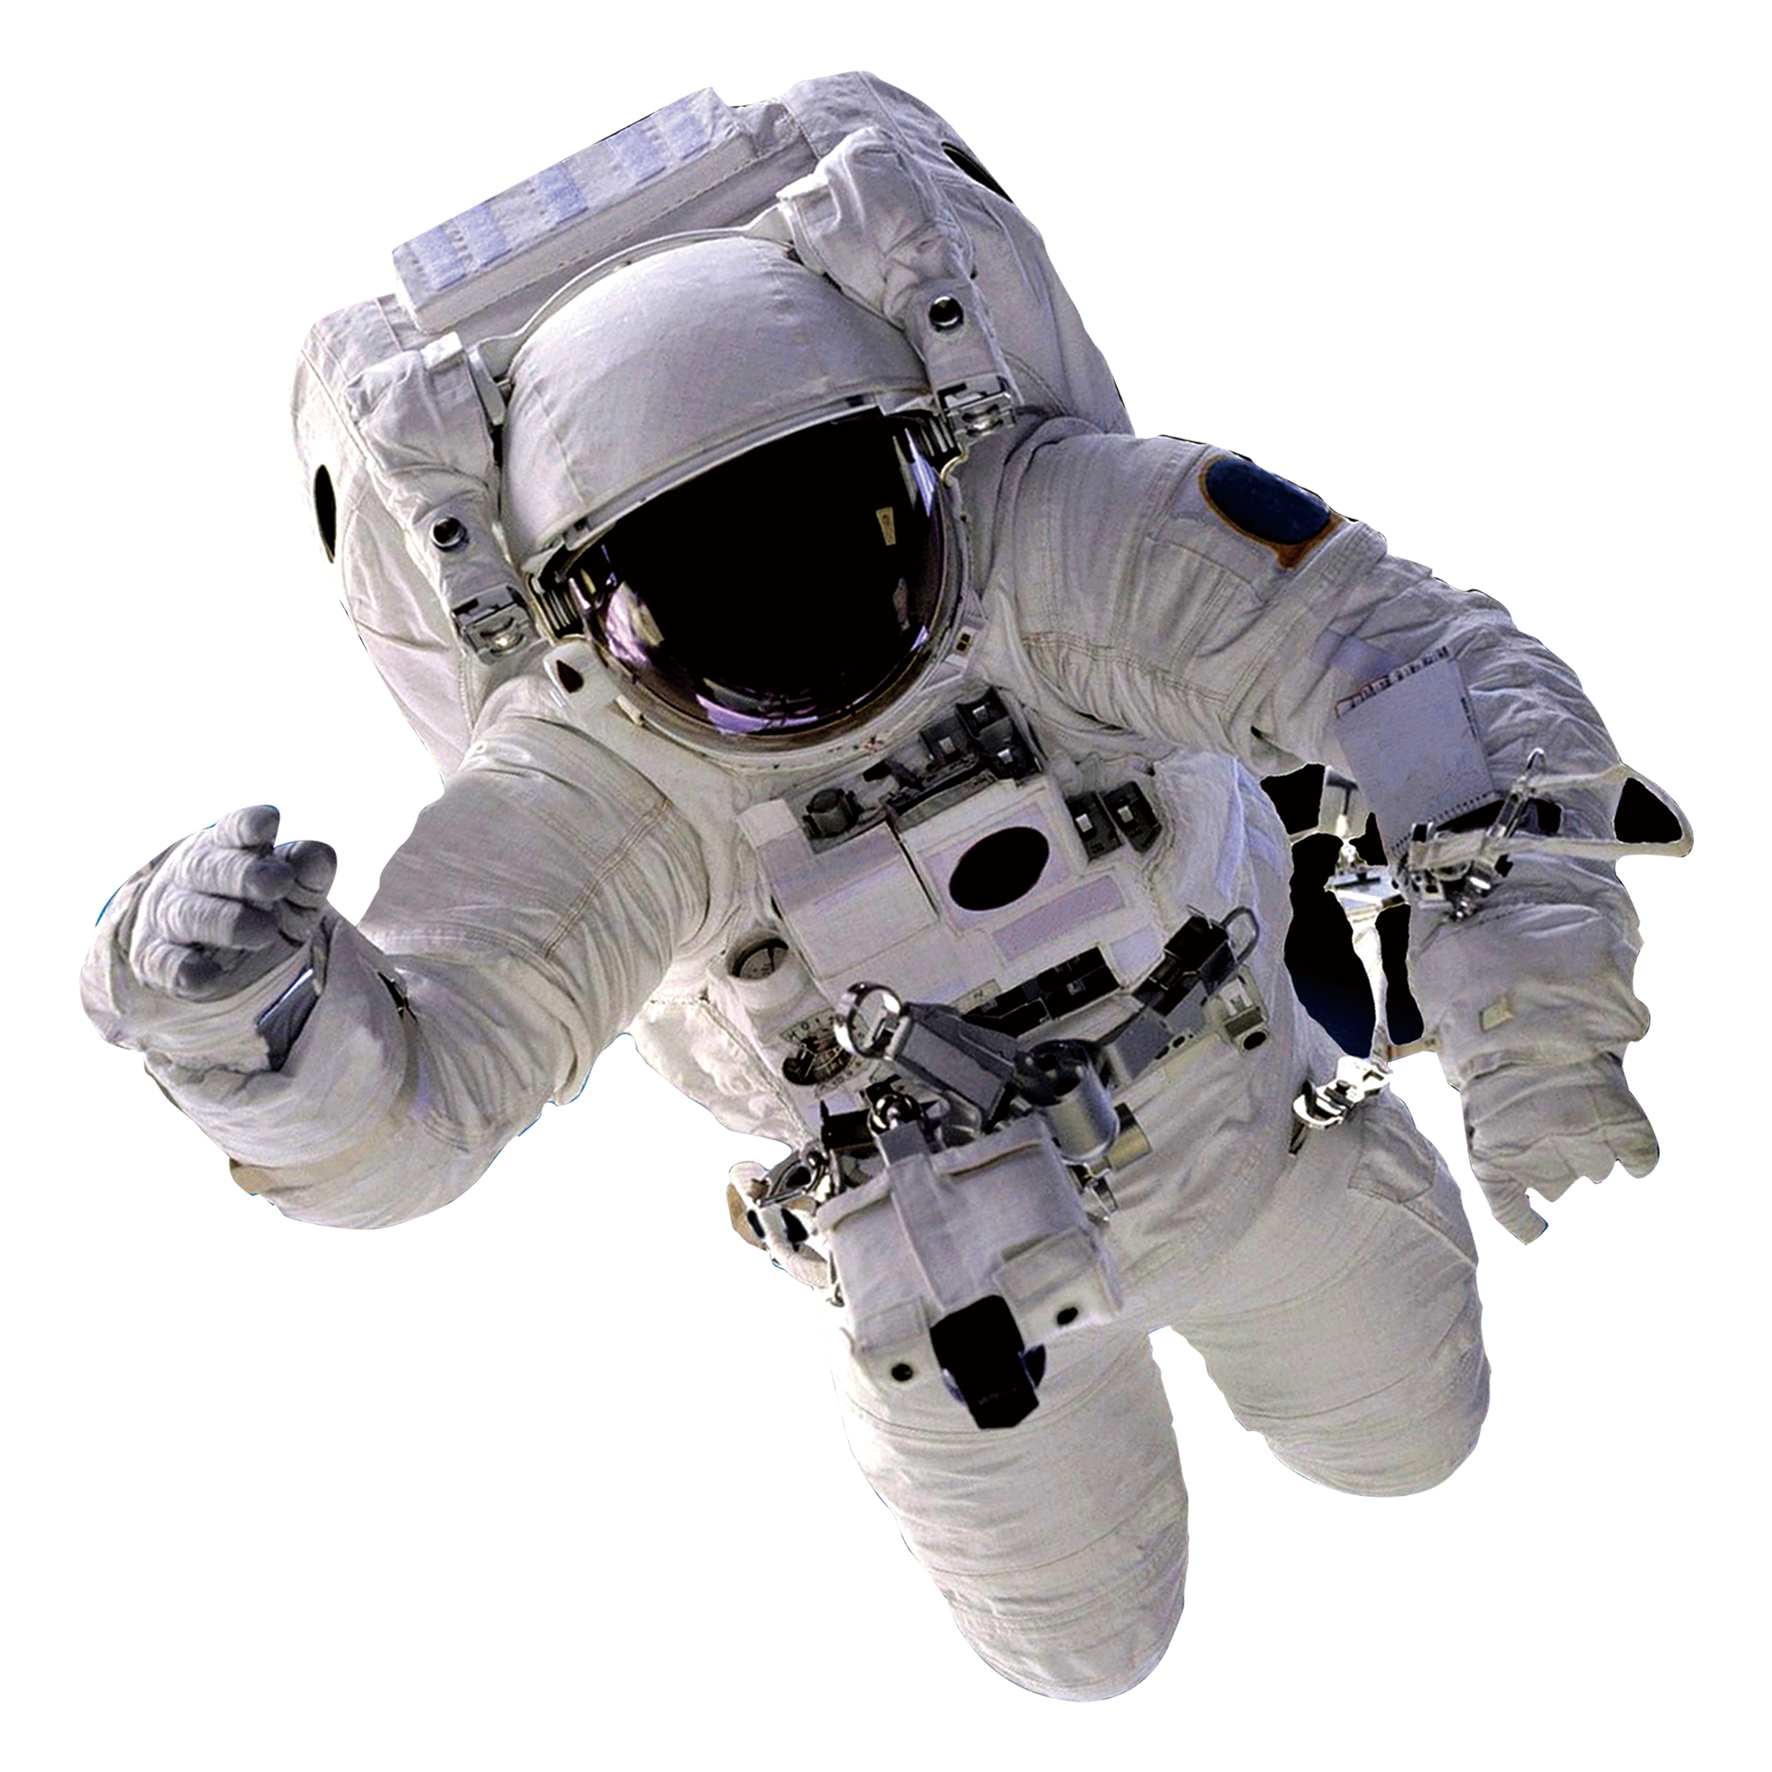 Astronauts PNG Image.